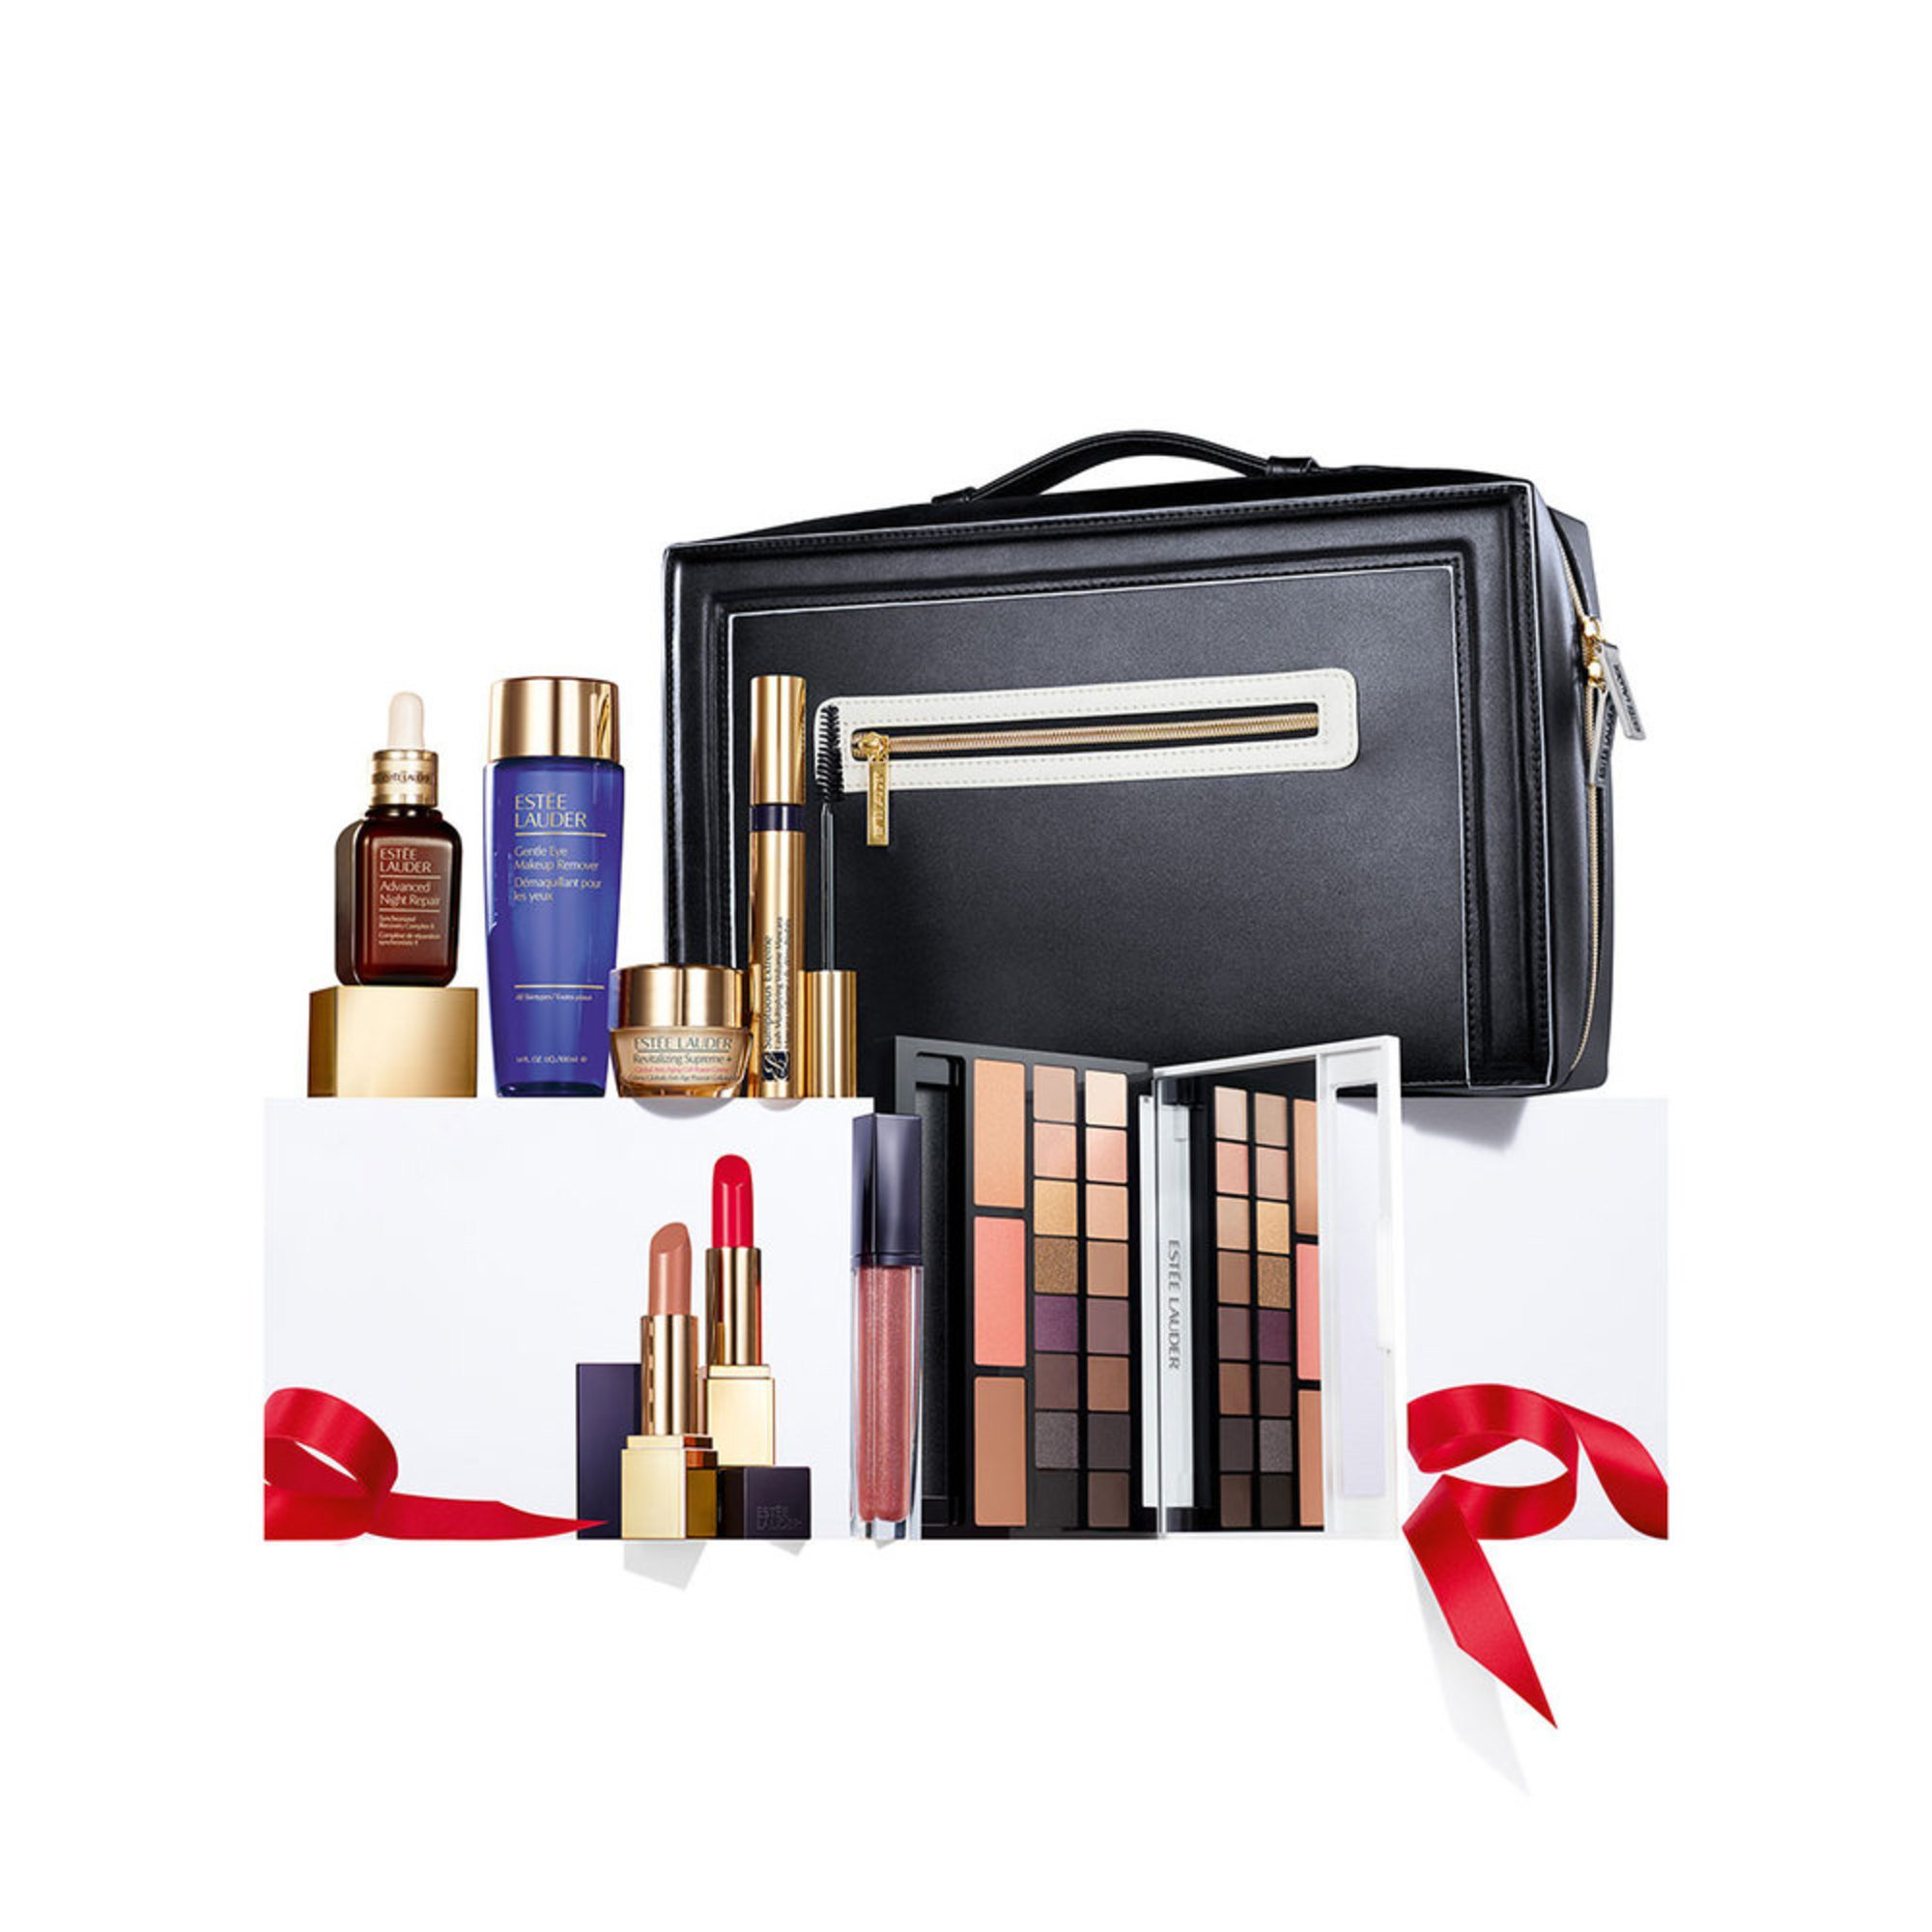 Estee Lauder 2016 Special Military Holiday Set   Beauty U0026 Fragrance Gift Sets   Holiday Gift ...